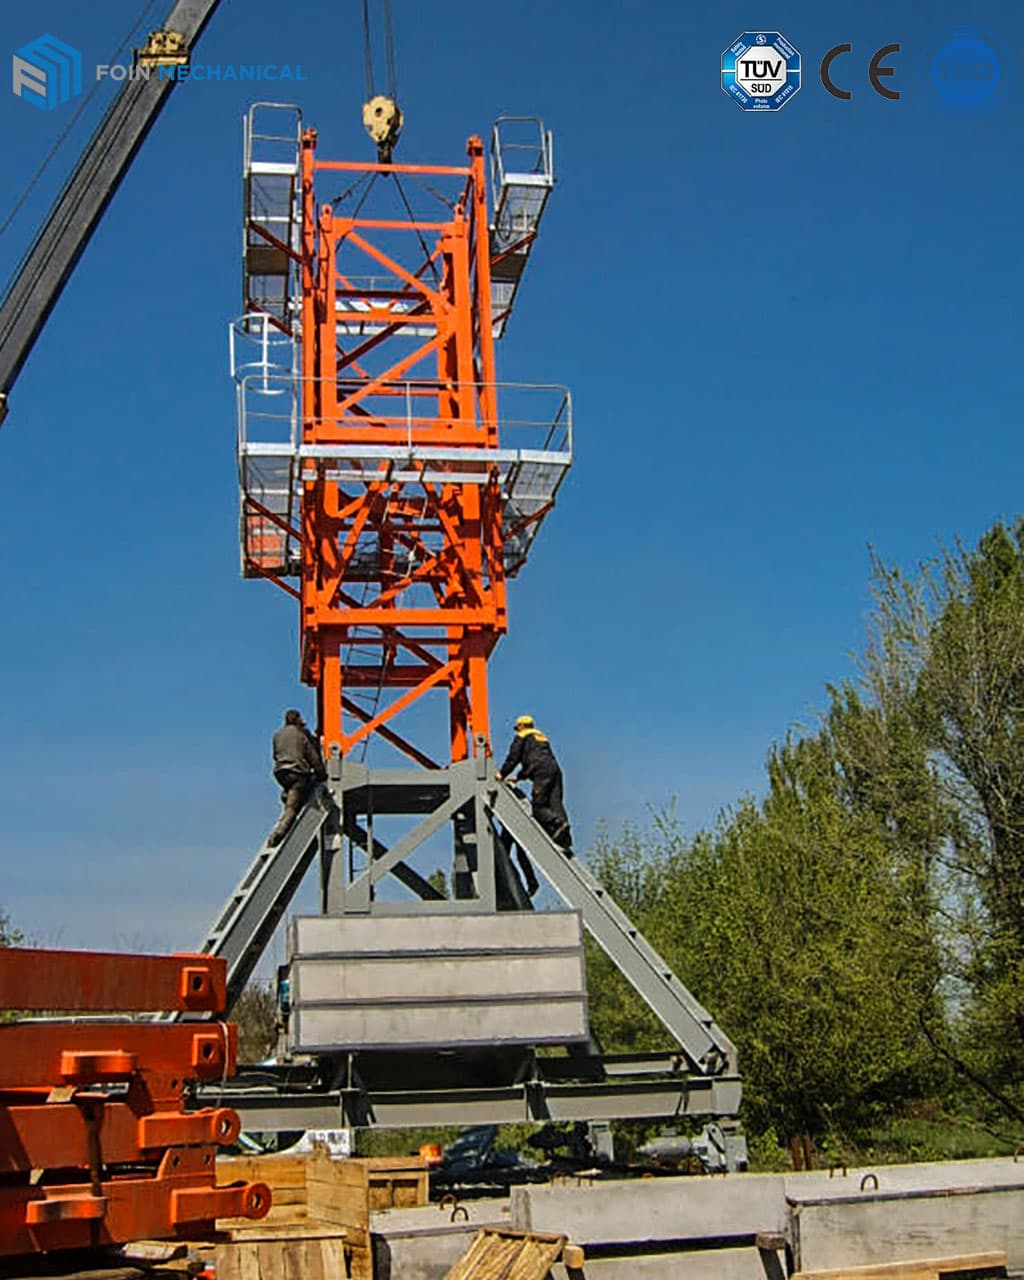 traveling chassis foin tower crane